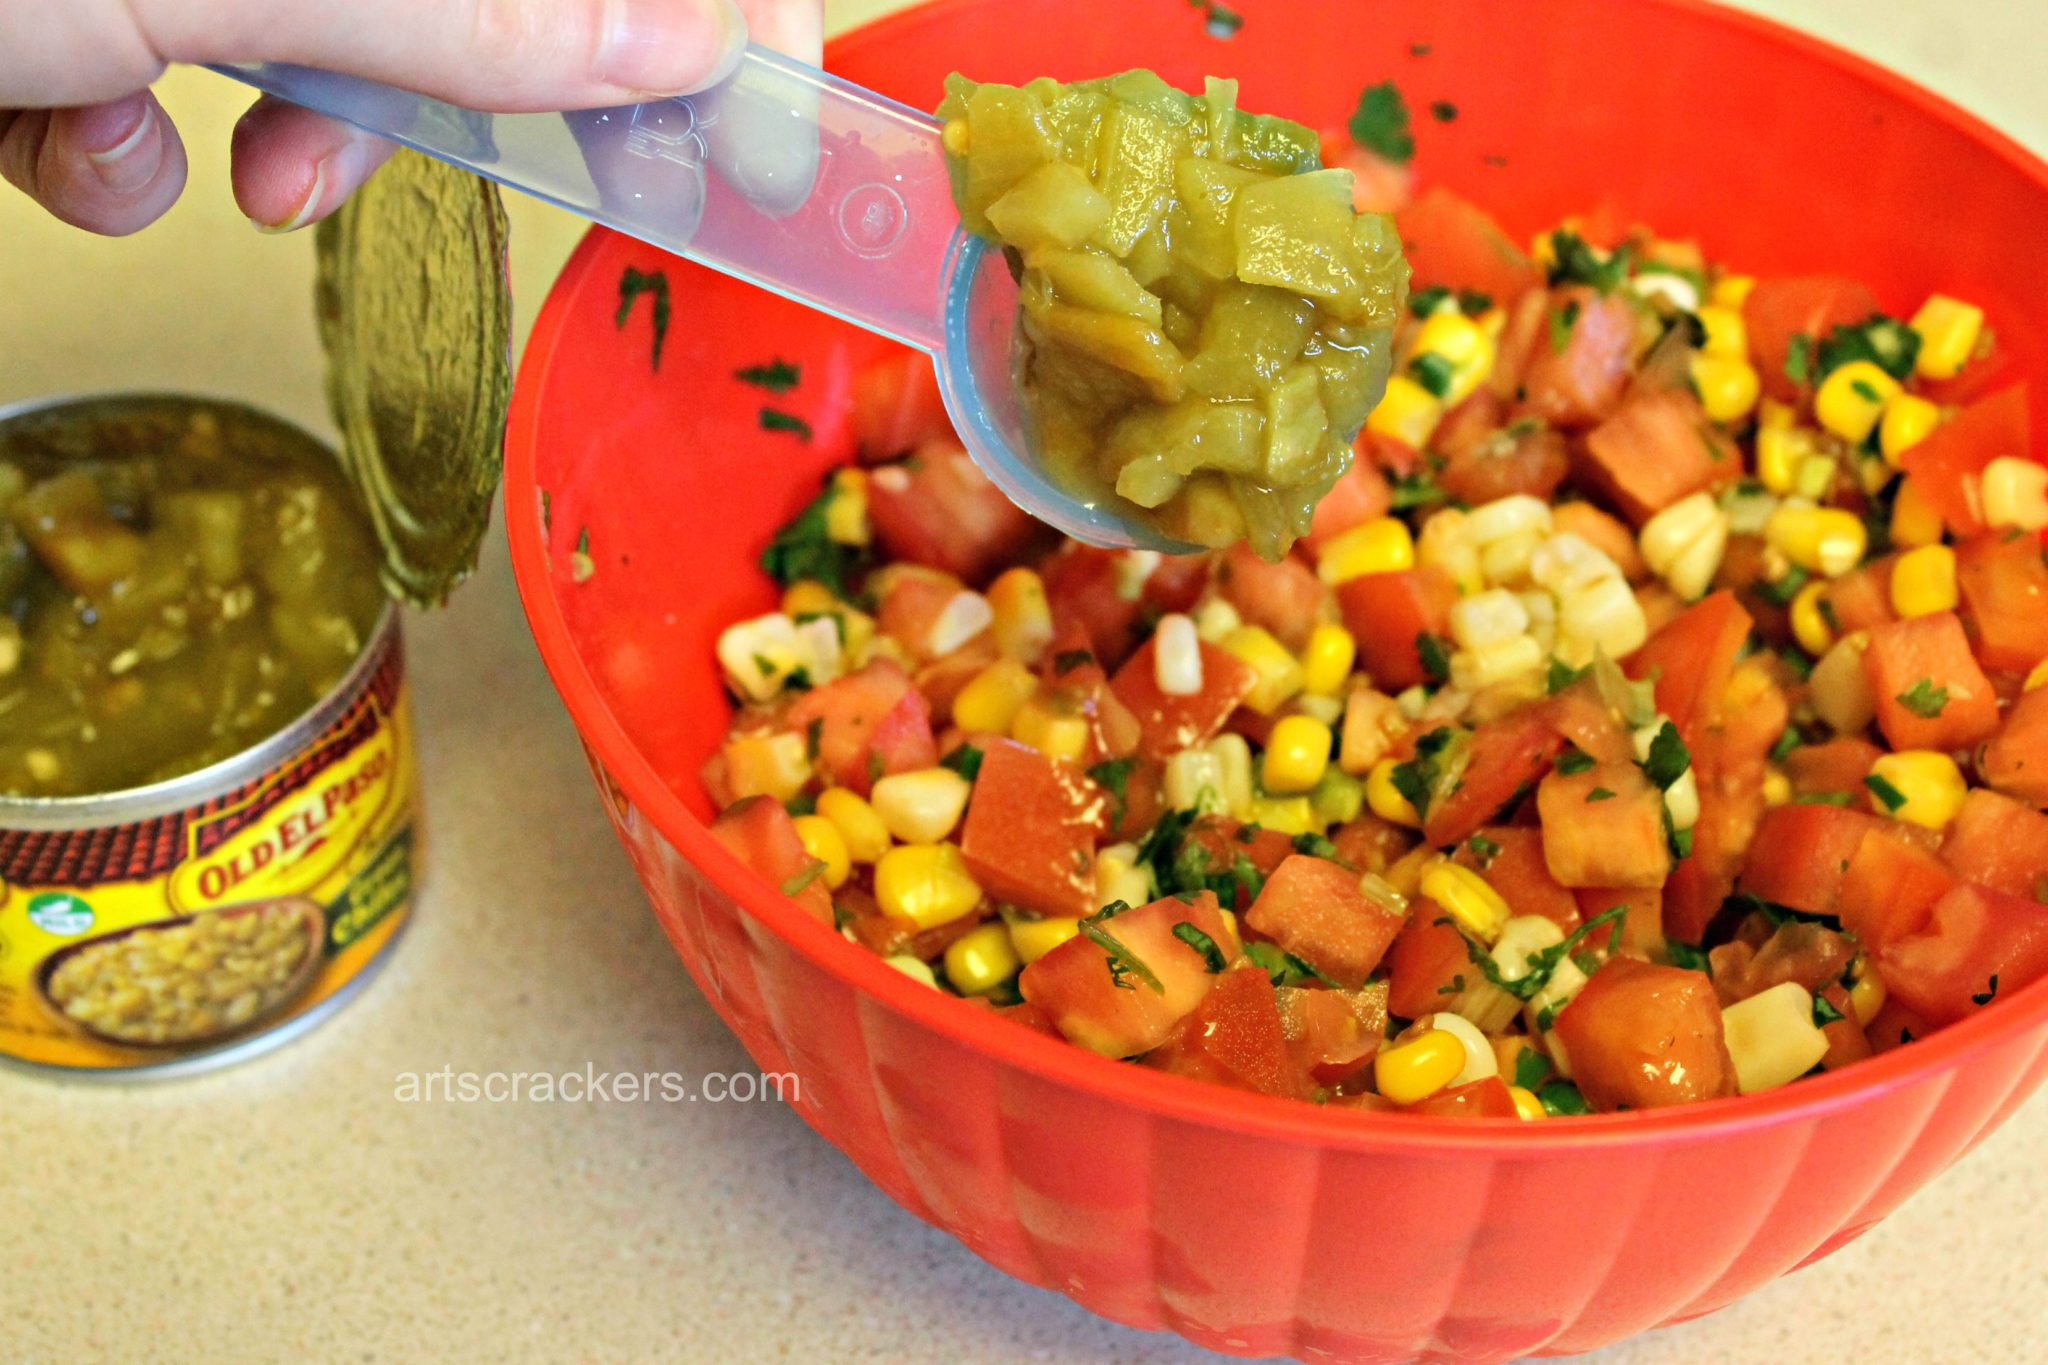 Old El Paso Green Chilies into Salsa